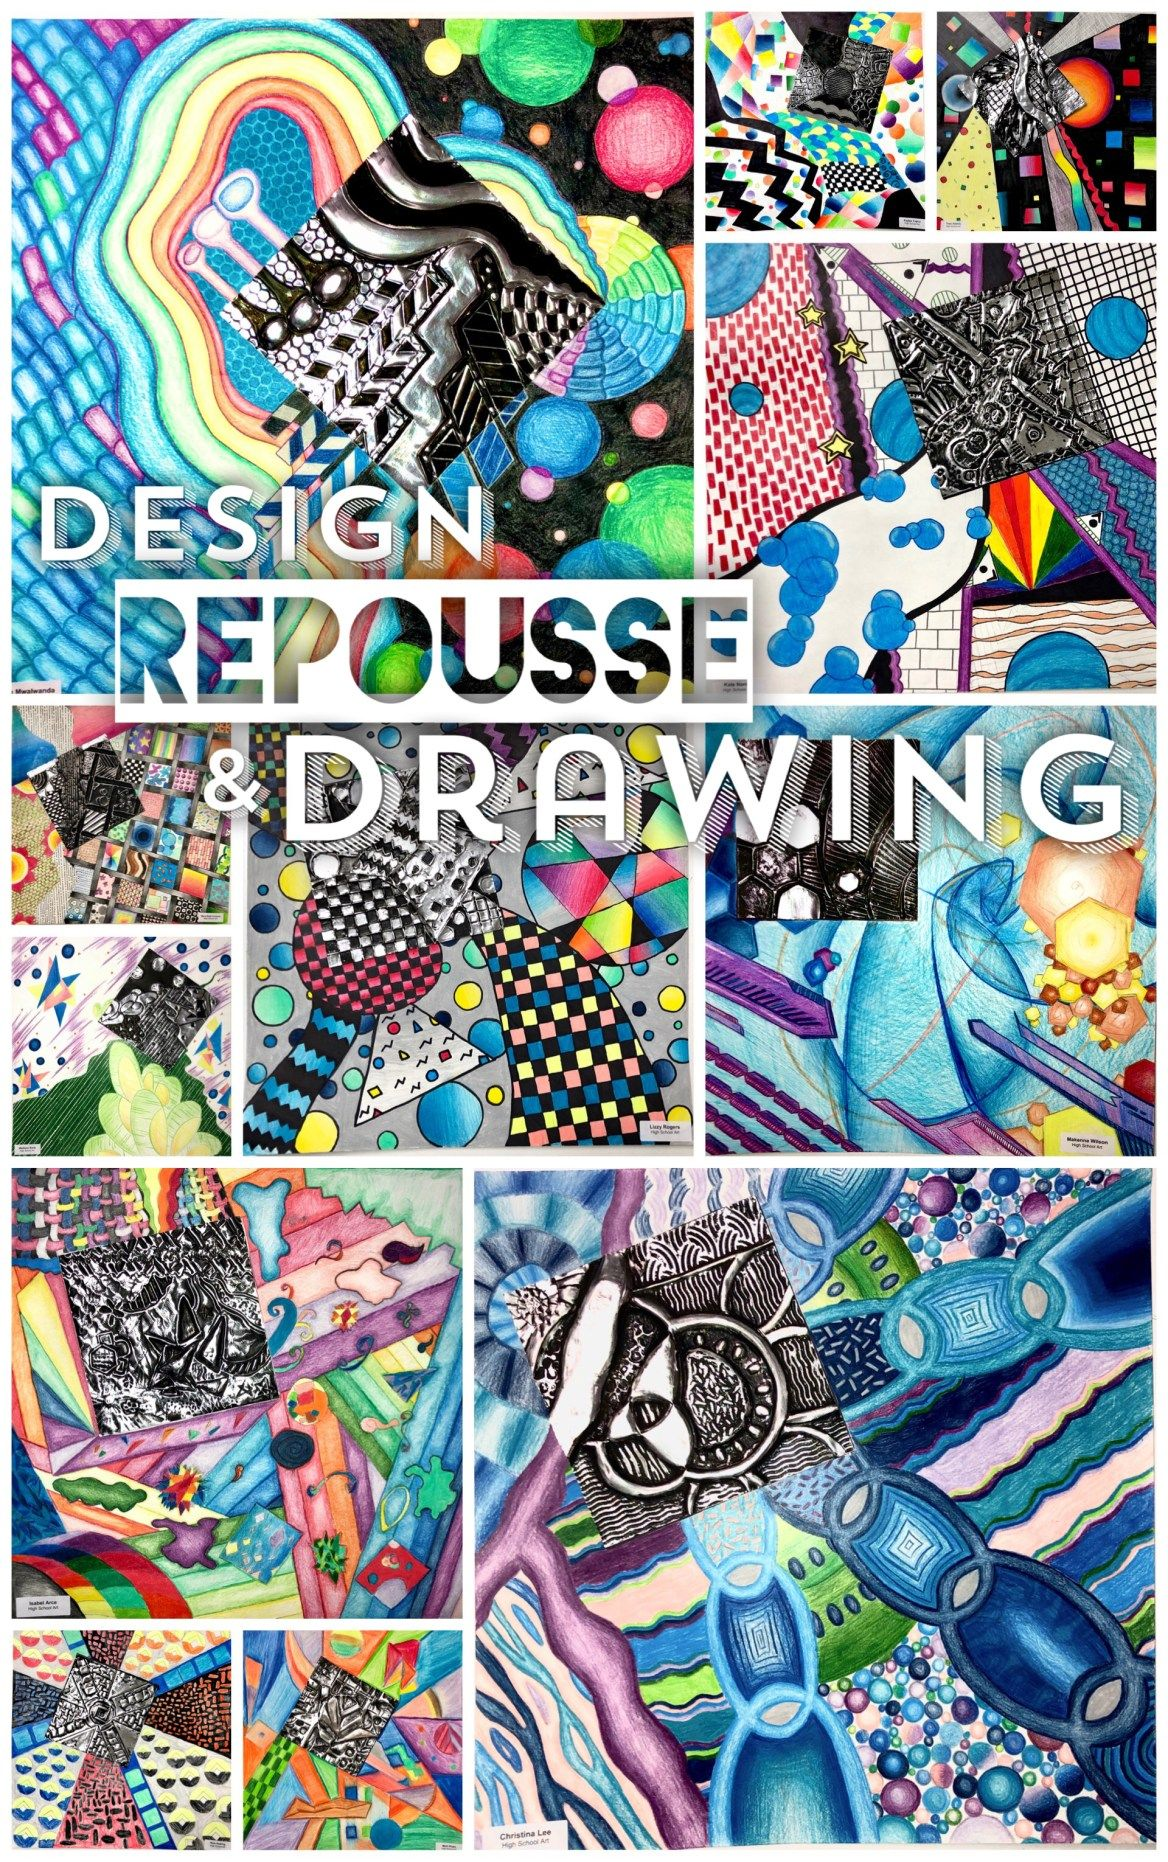 Design principles metal repousse and drawing art lessons